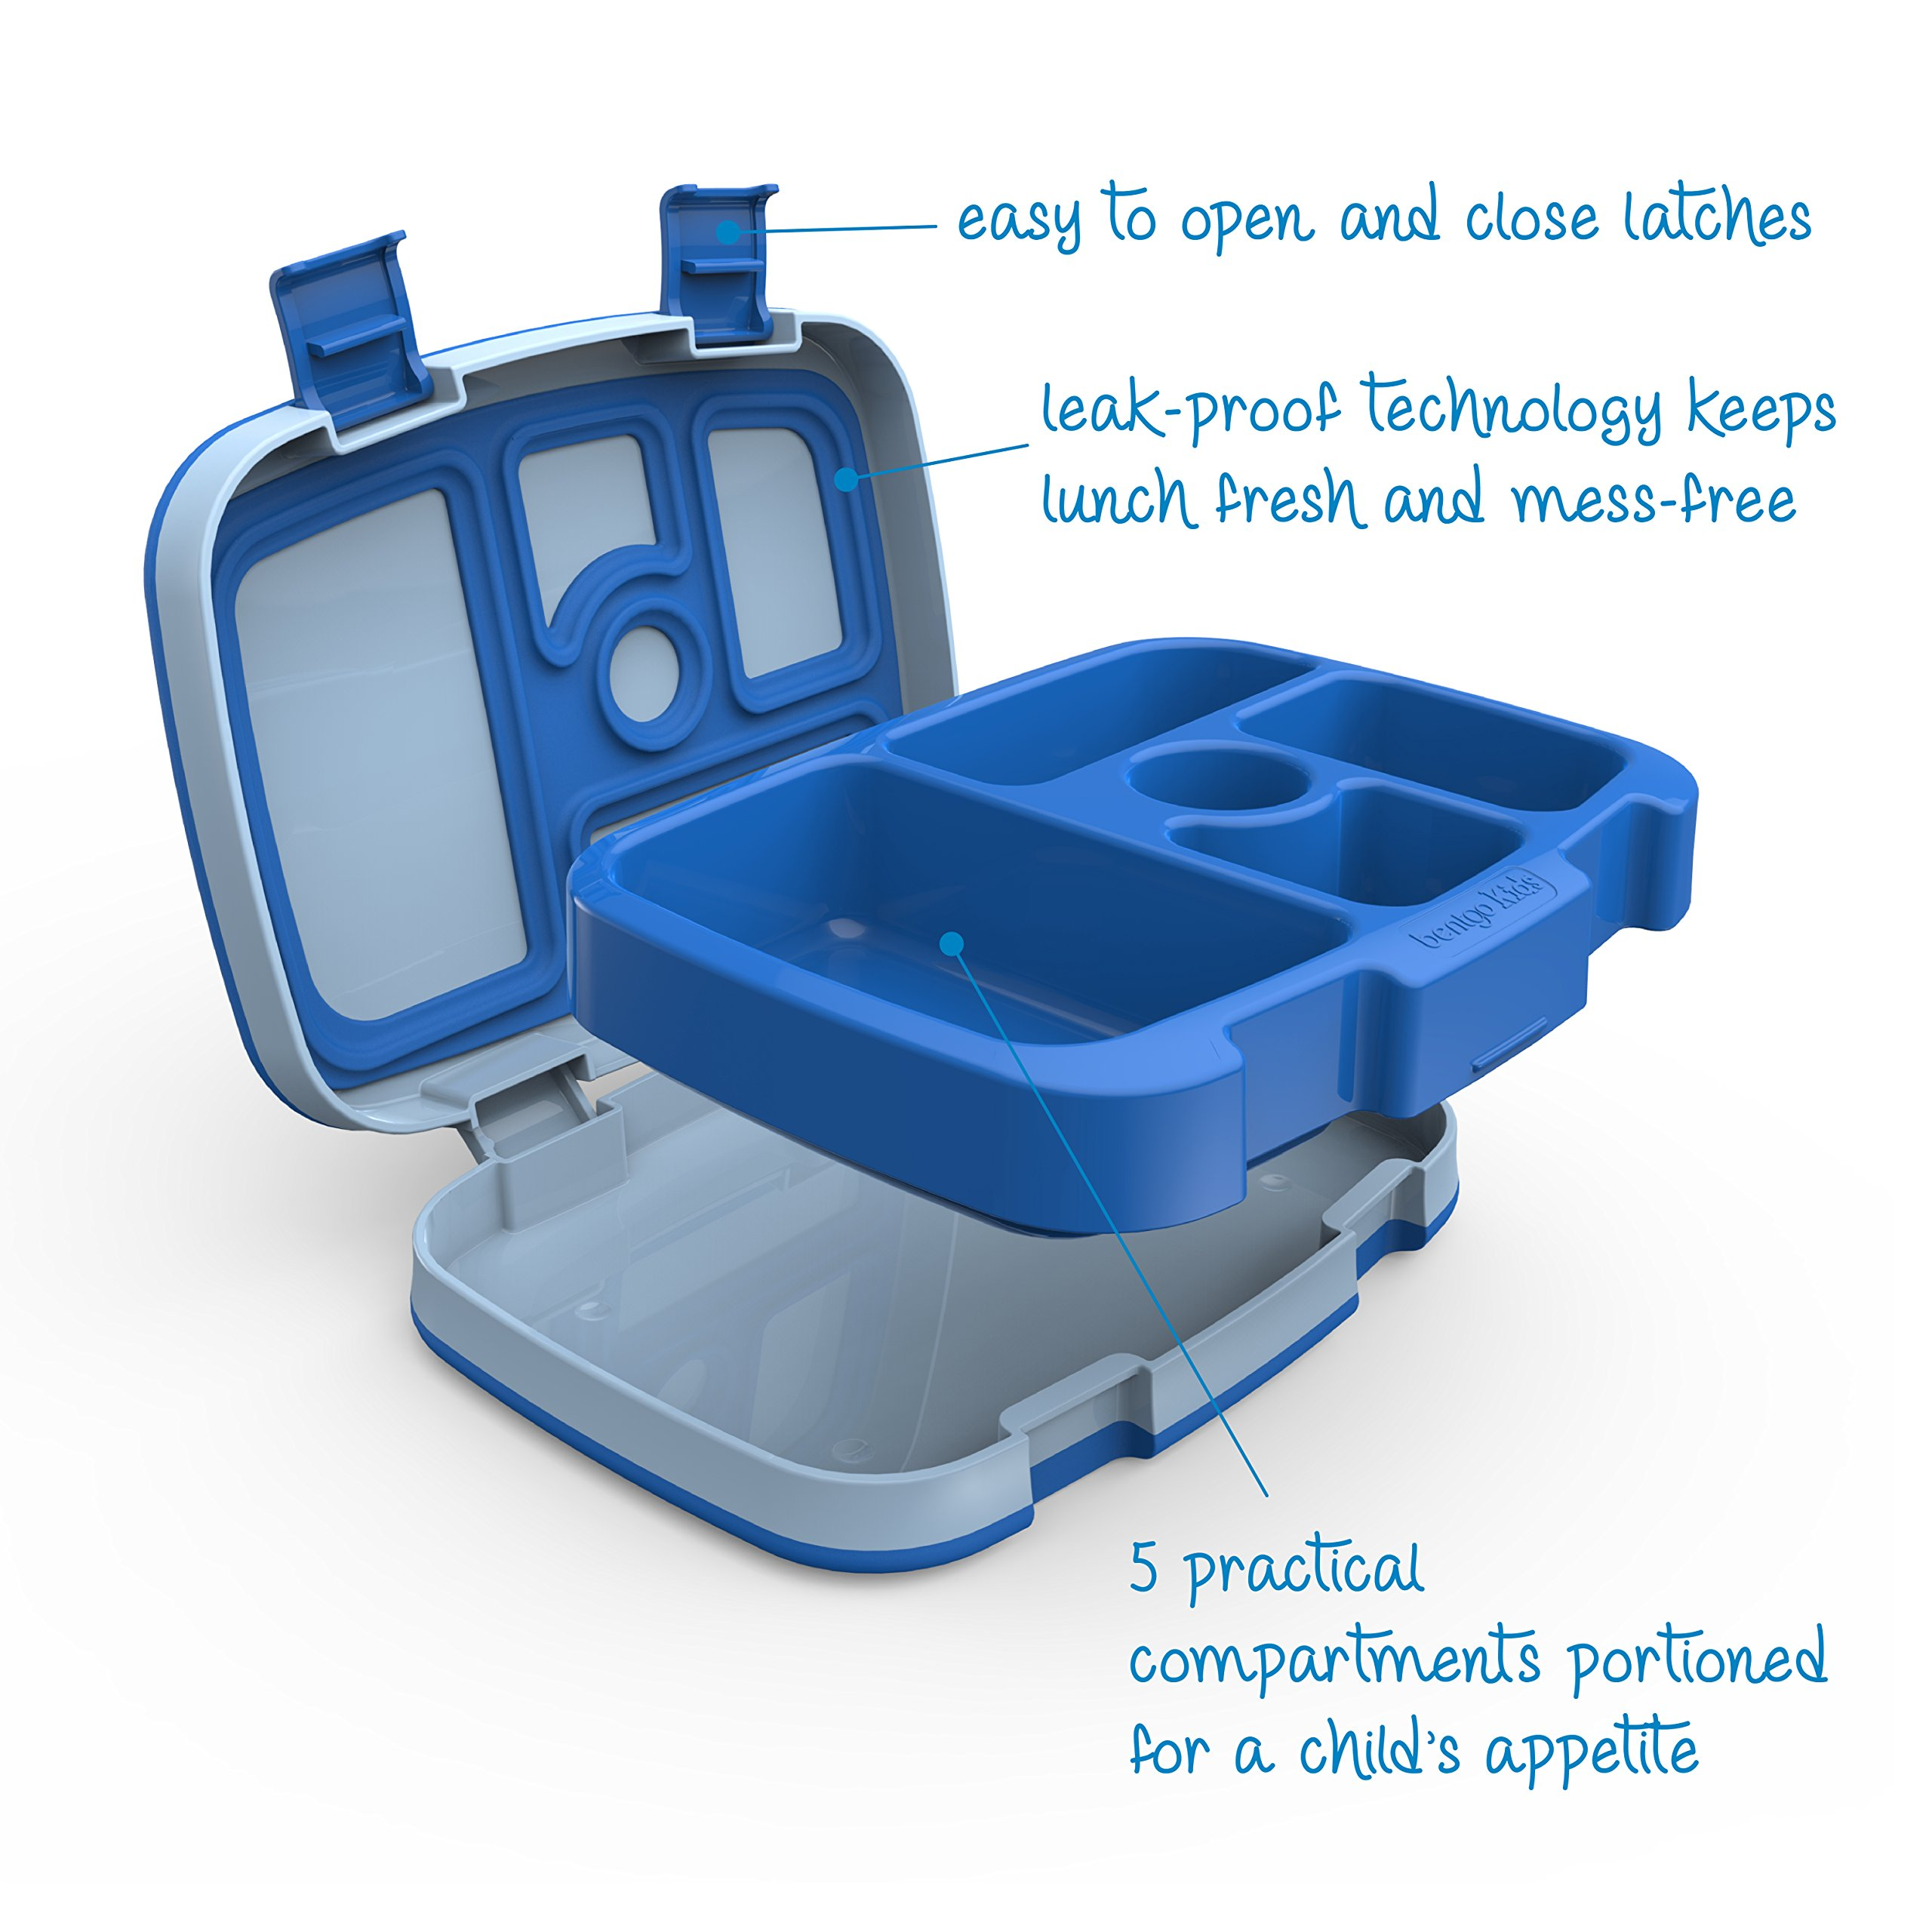 Bentgo Kids Childrens Lunch Box - Bento-Styled Lunch Solution Offers Durable, Leak-Proof, On-the-Go Meal and Snack Packing by Bentgo (Image #4)